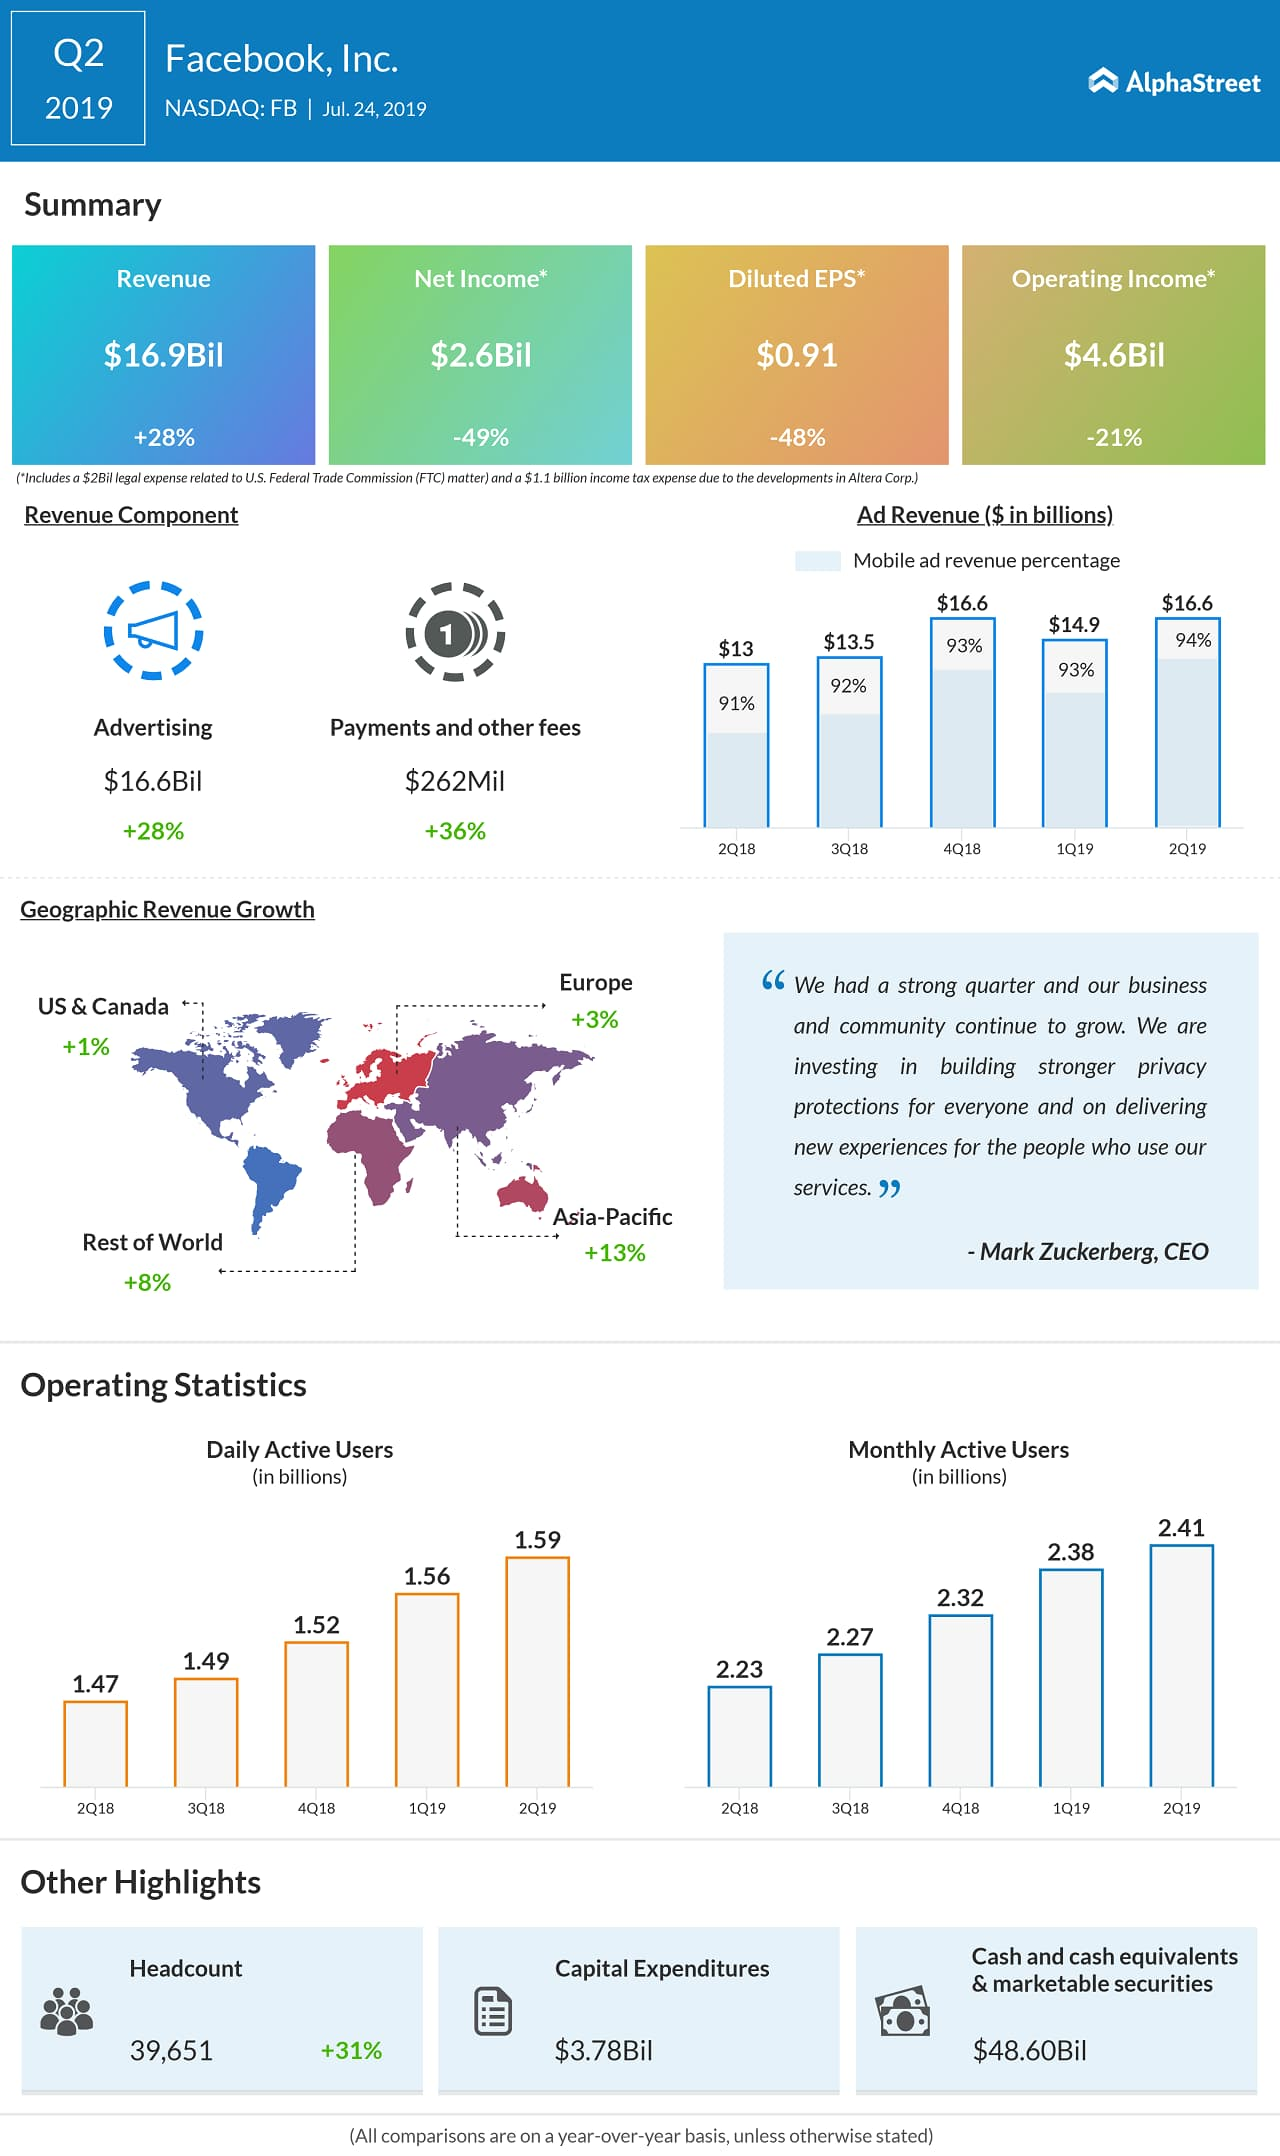 facebook Q2 2019 earnings infographic